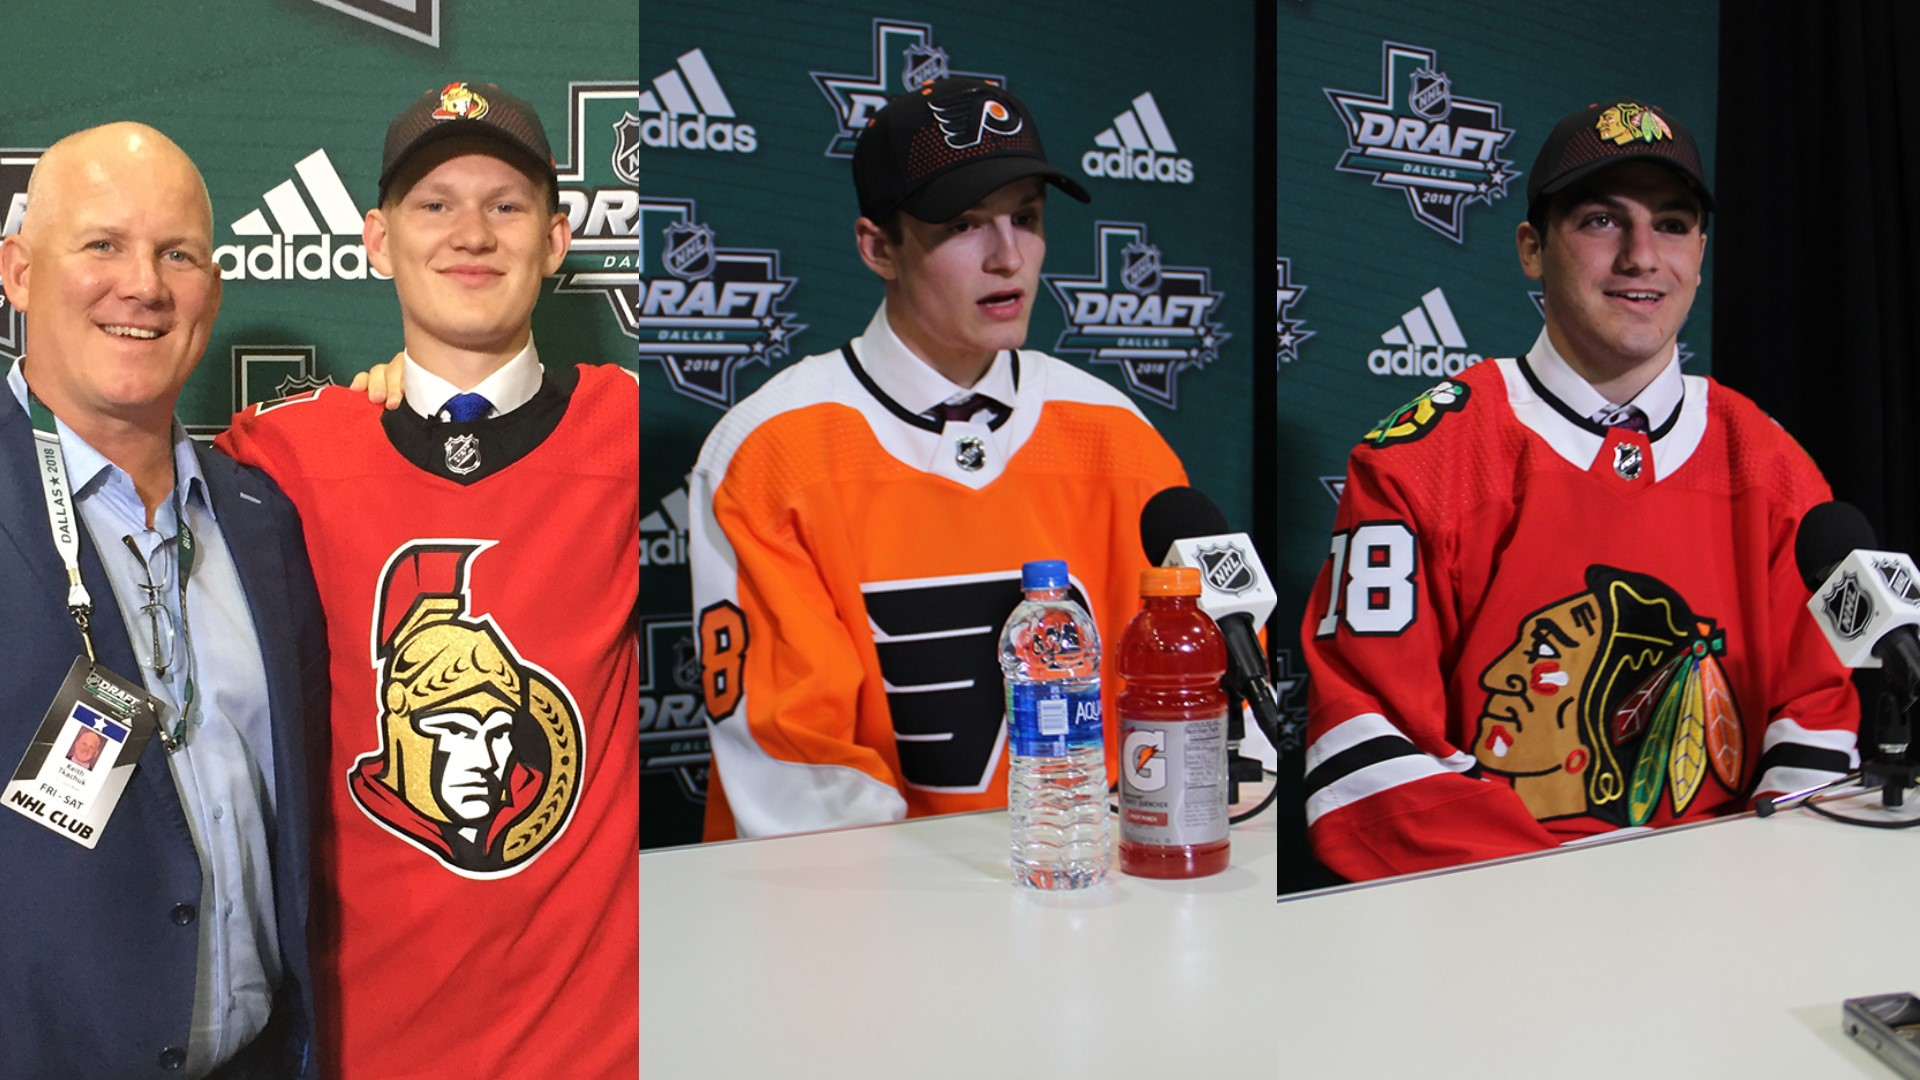 852b9ae8deb Three Terriers Selected at 2018 NHL Draft - Boston University Athletics